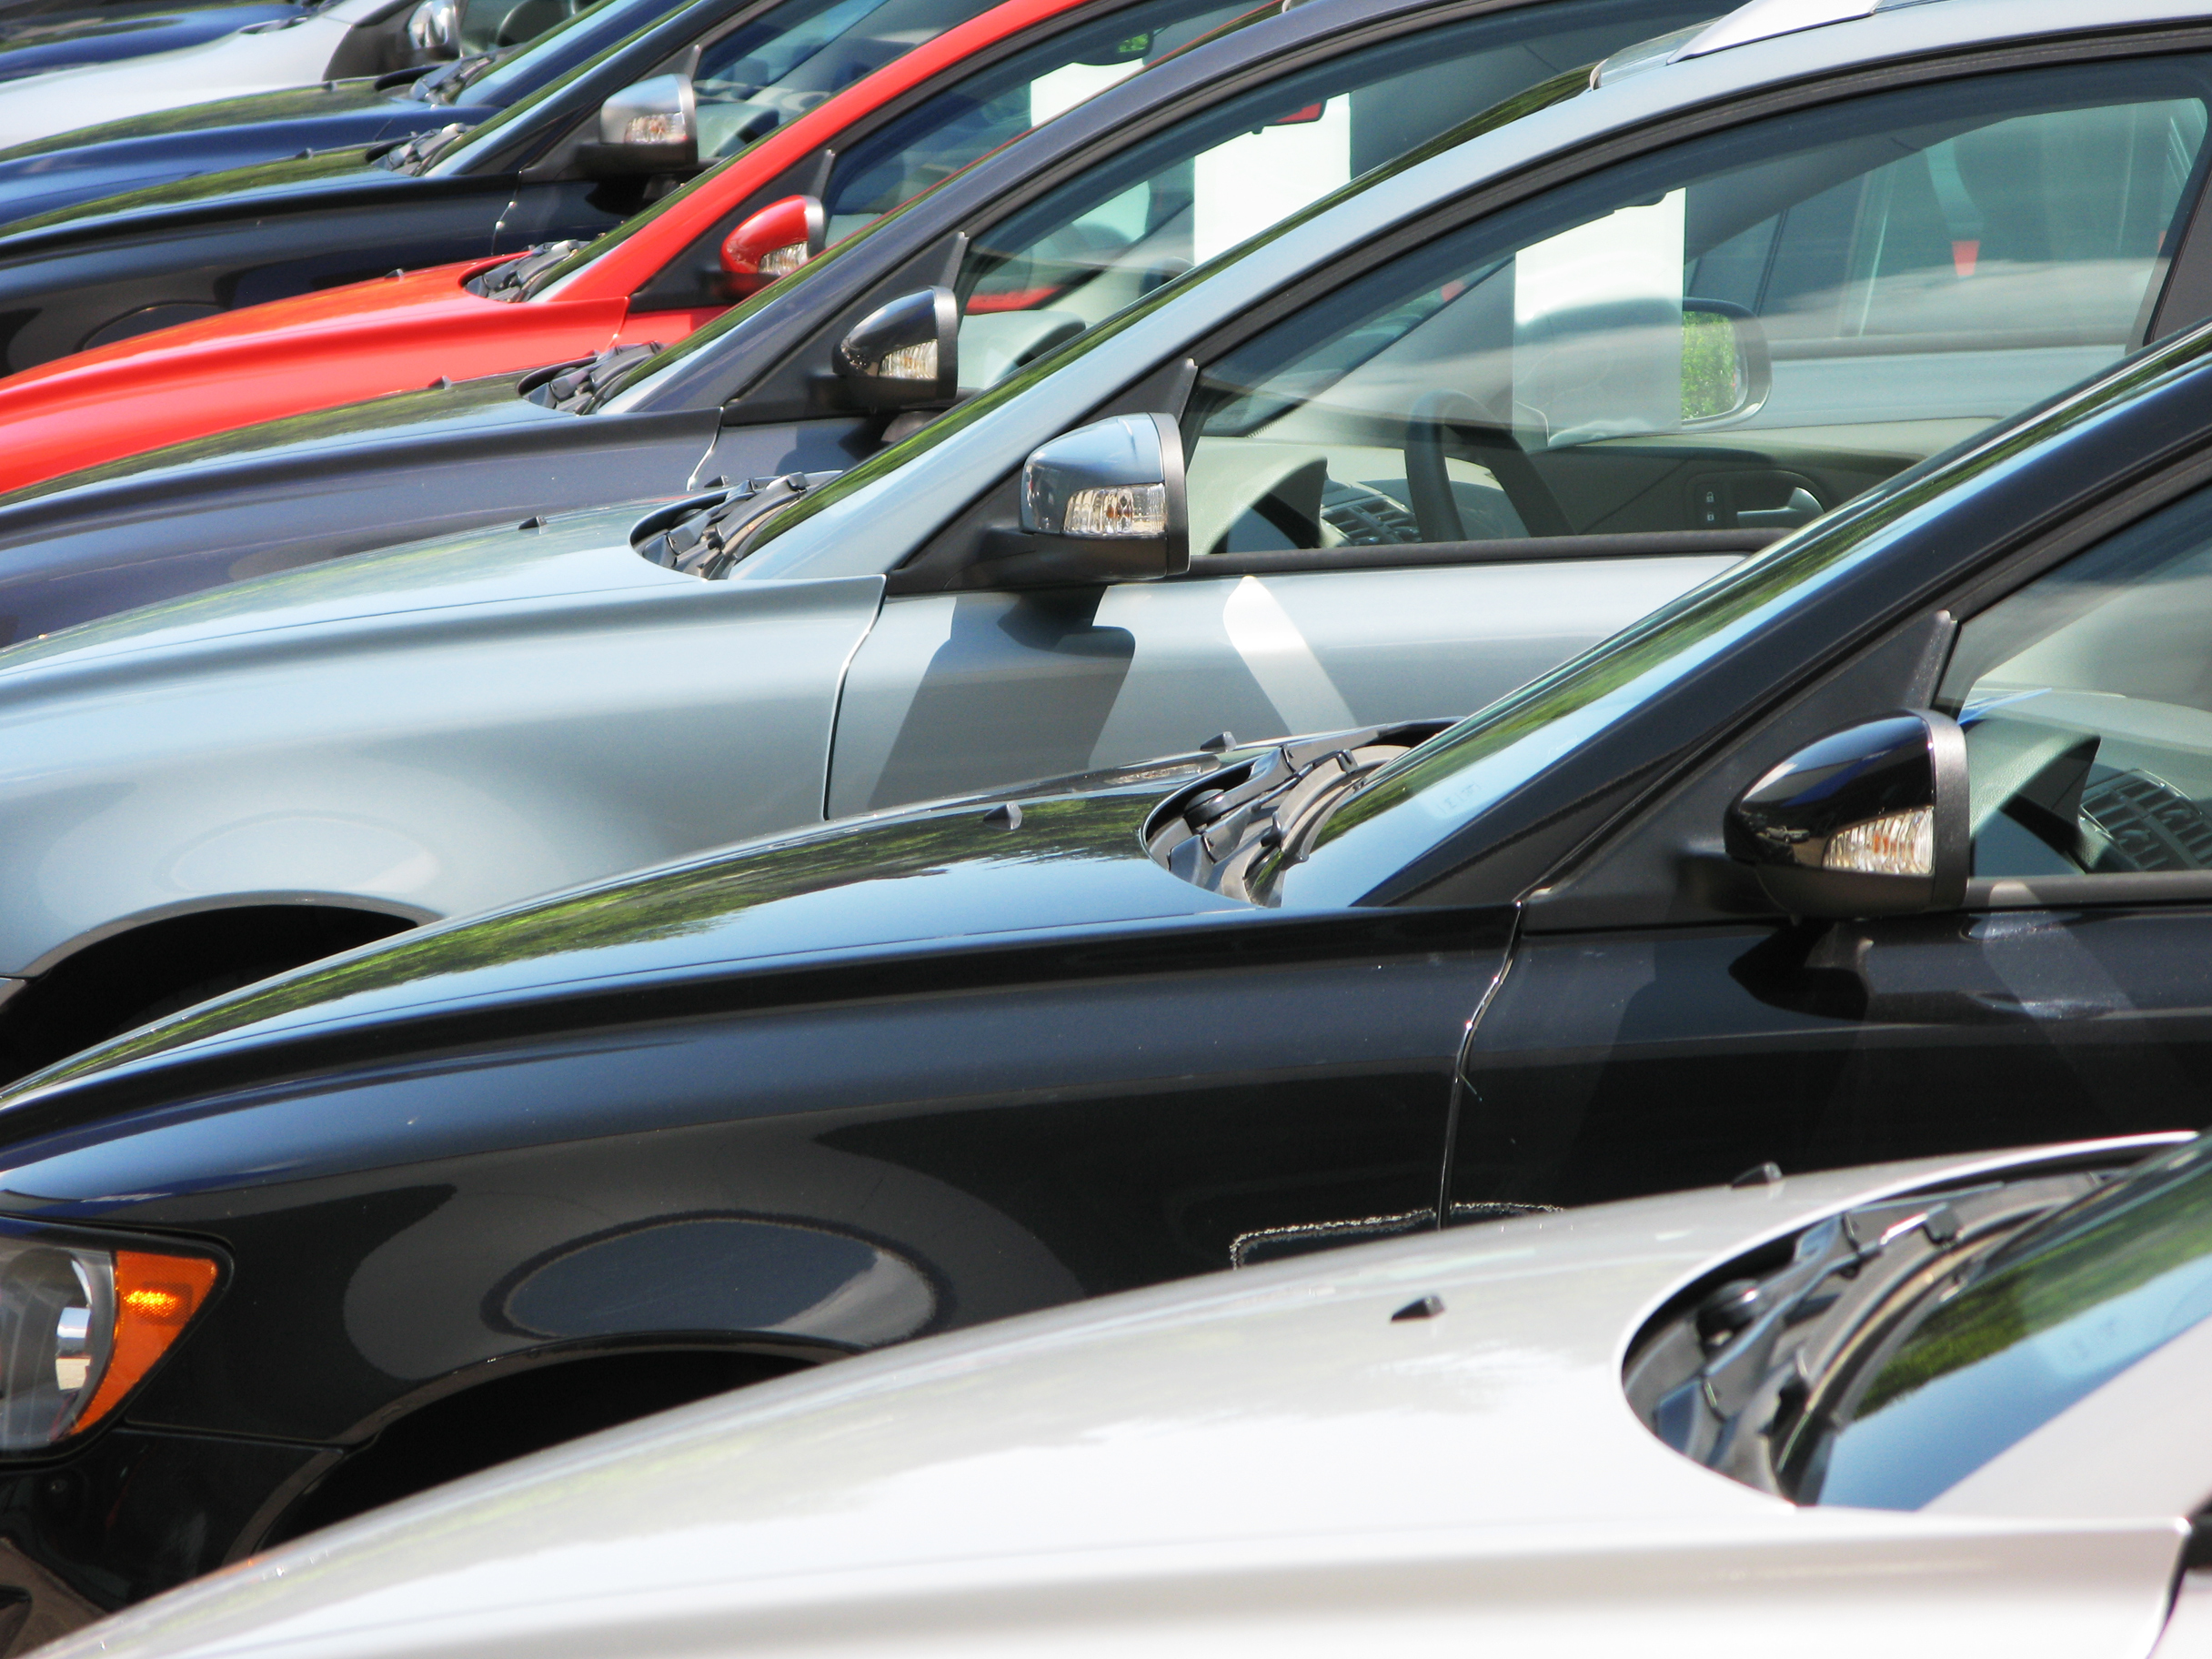 Pre Owned Car Dealerships Best Of Purchasing A Pre Owned Vehicle – Canada Hotels and Travel Information